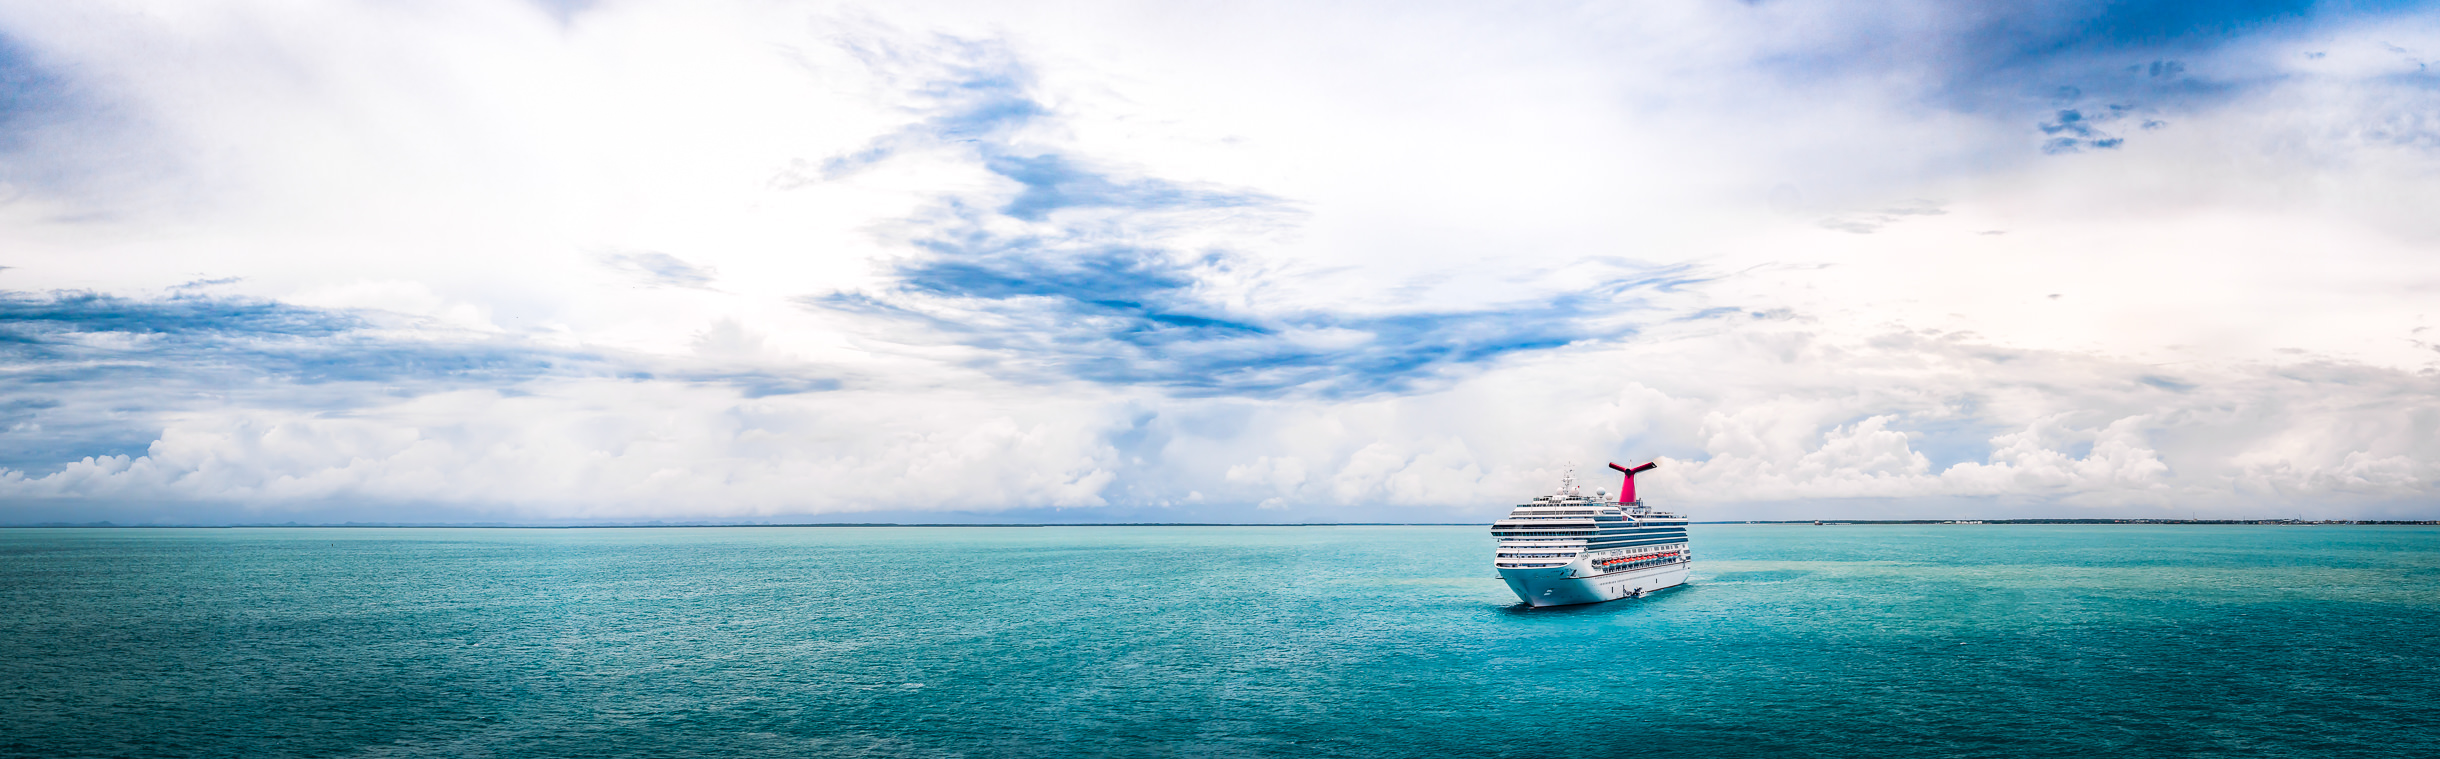 The cruise shipCarnival Glory sits anchored off the coast of Belize.